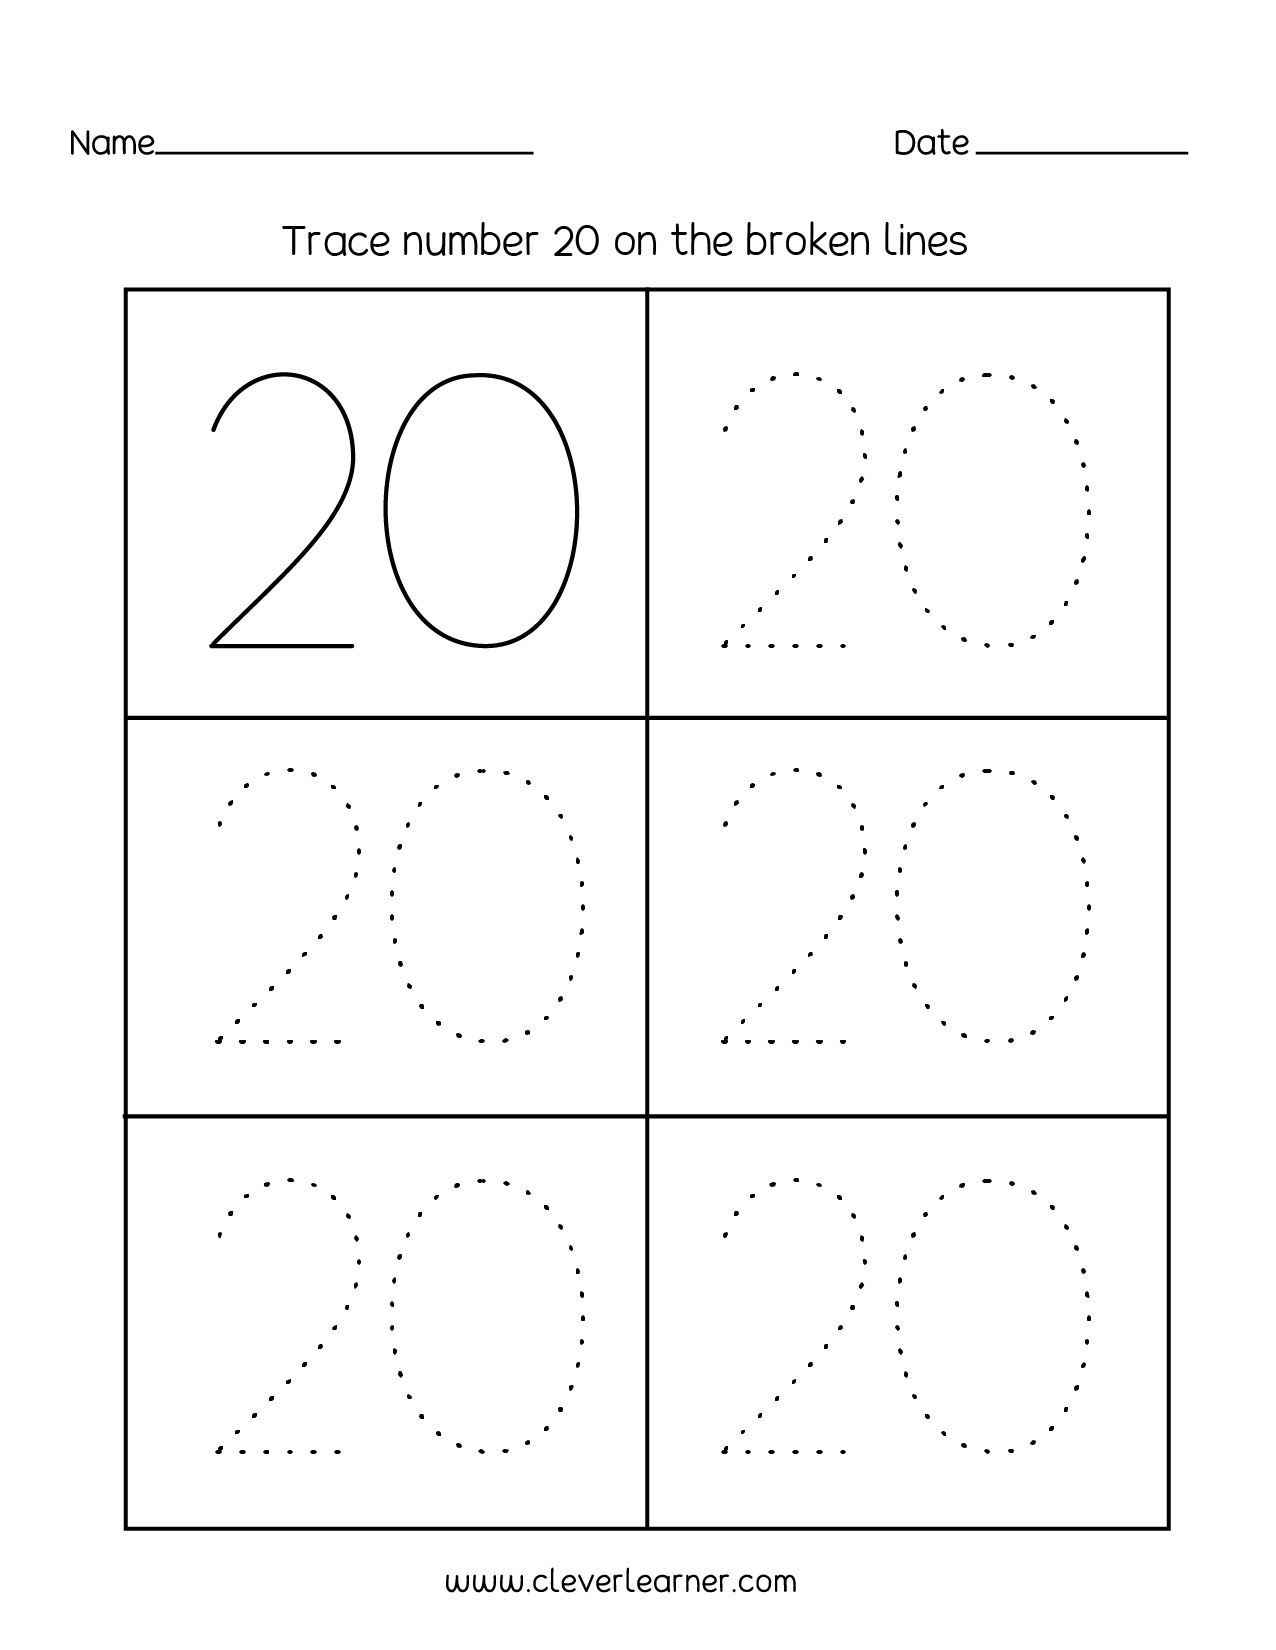 Kids Worksheets Able Toddler Number Writing Counting And intended for Tracing Letters And Numbers For Toddlers